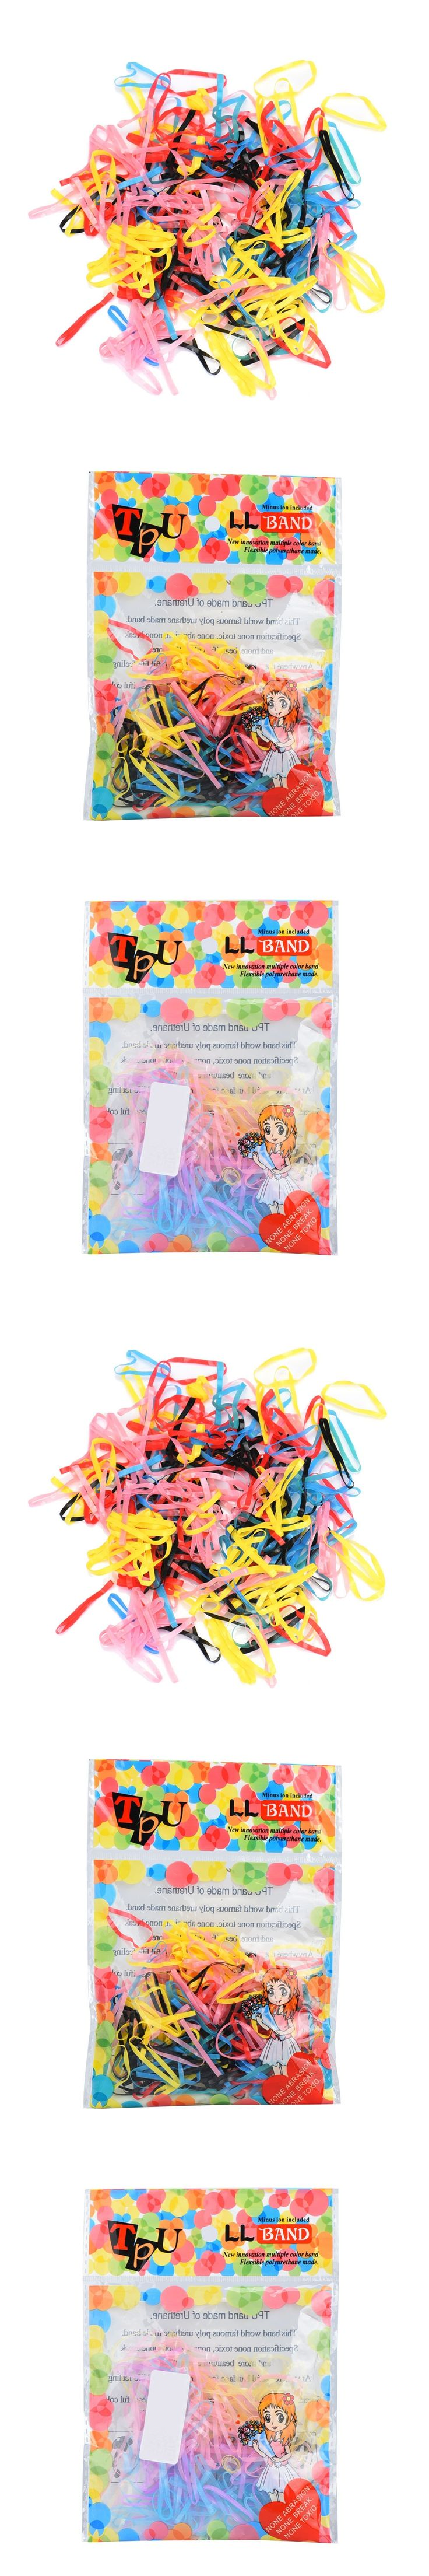 Hair Styling 500pcs/lot Rubber Hairband Rope Ponytail Holder Elastic Hair Band Ties Braids Drop Shipping 70830